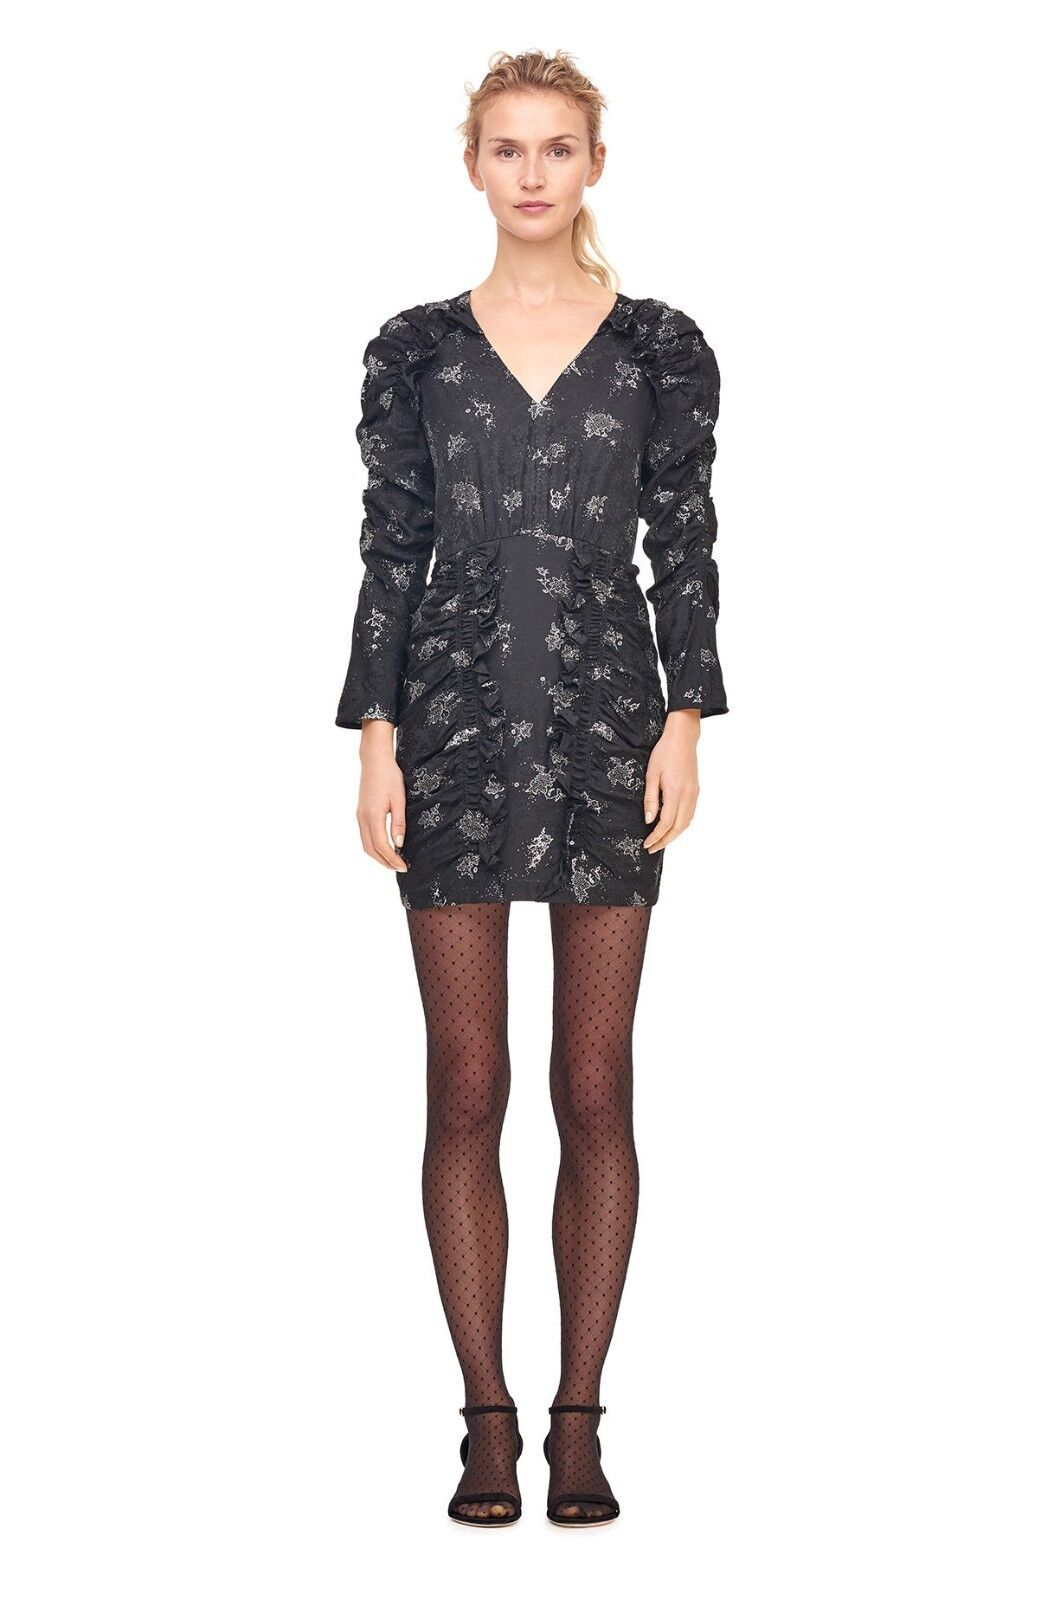 7414fd214cd94e NEW Rebecca Taylor Glitter Print Silk Jacquard Dress in schwarz - Größe 10